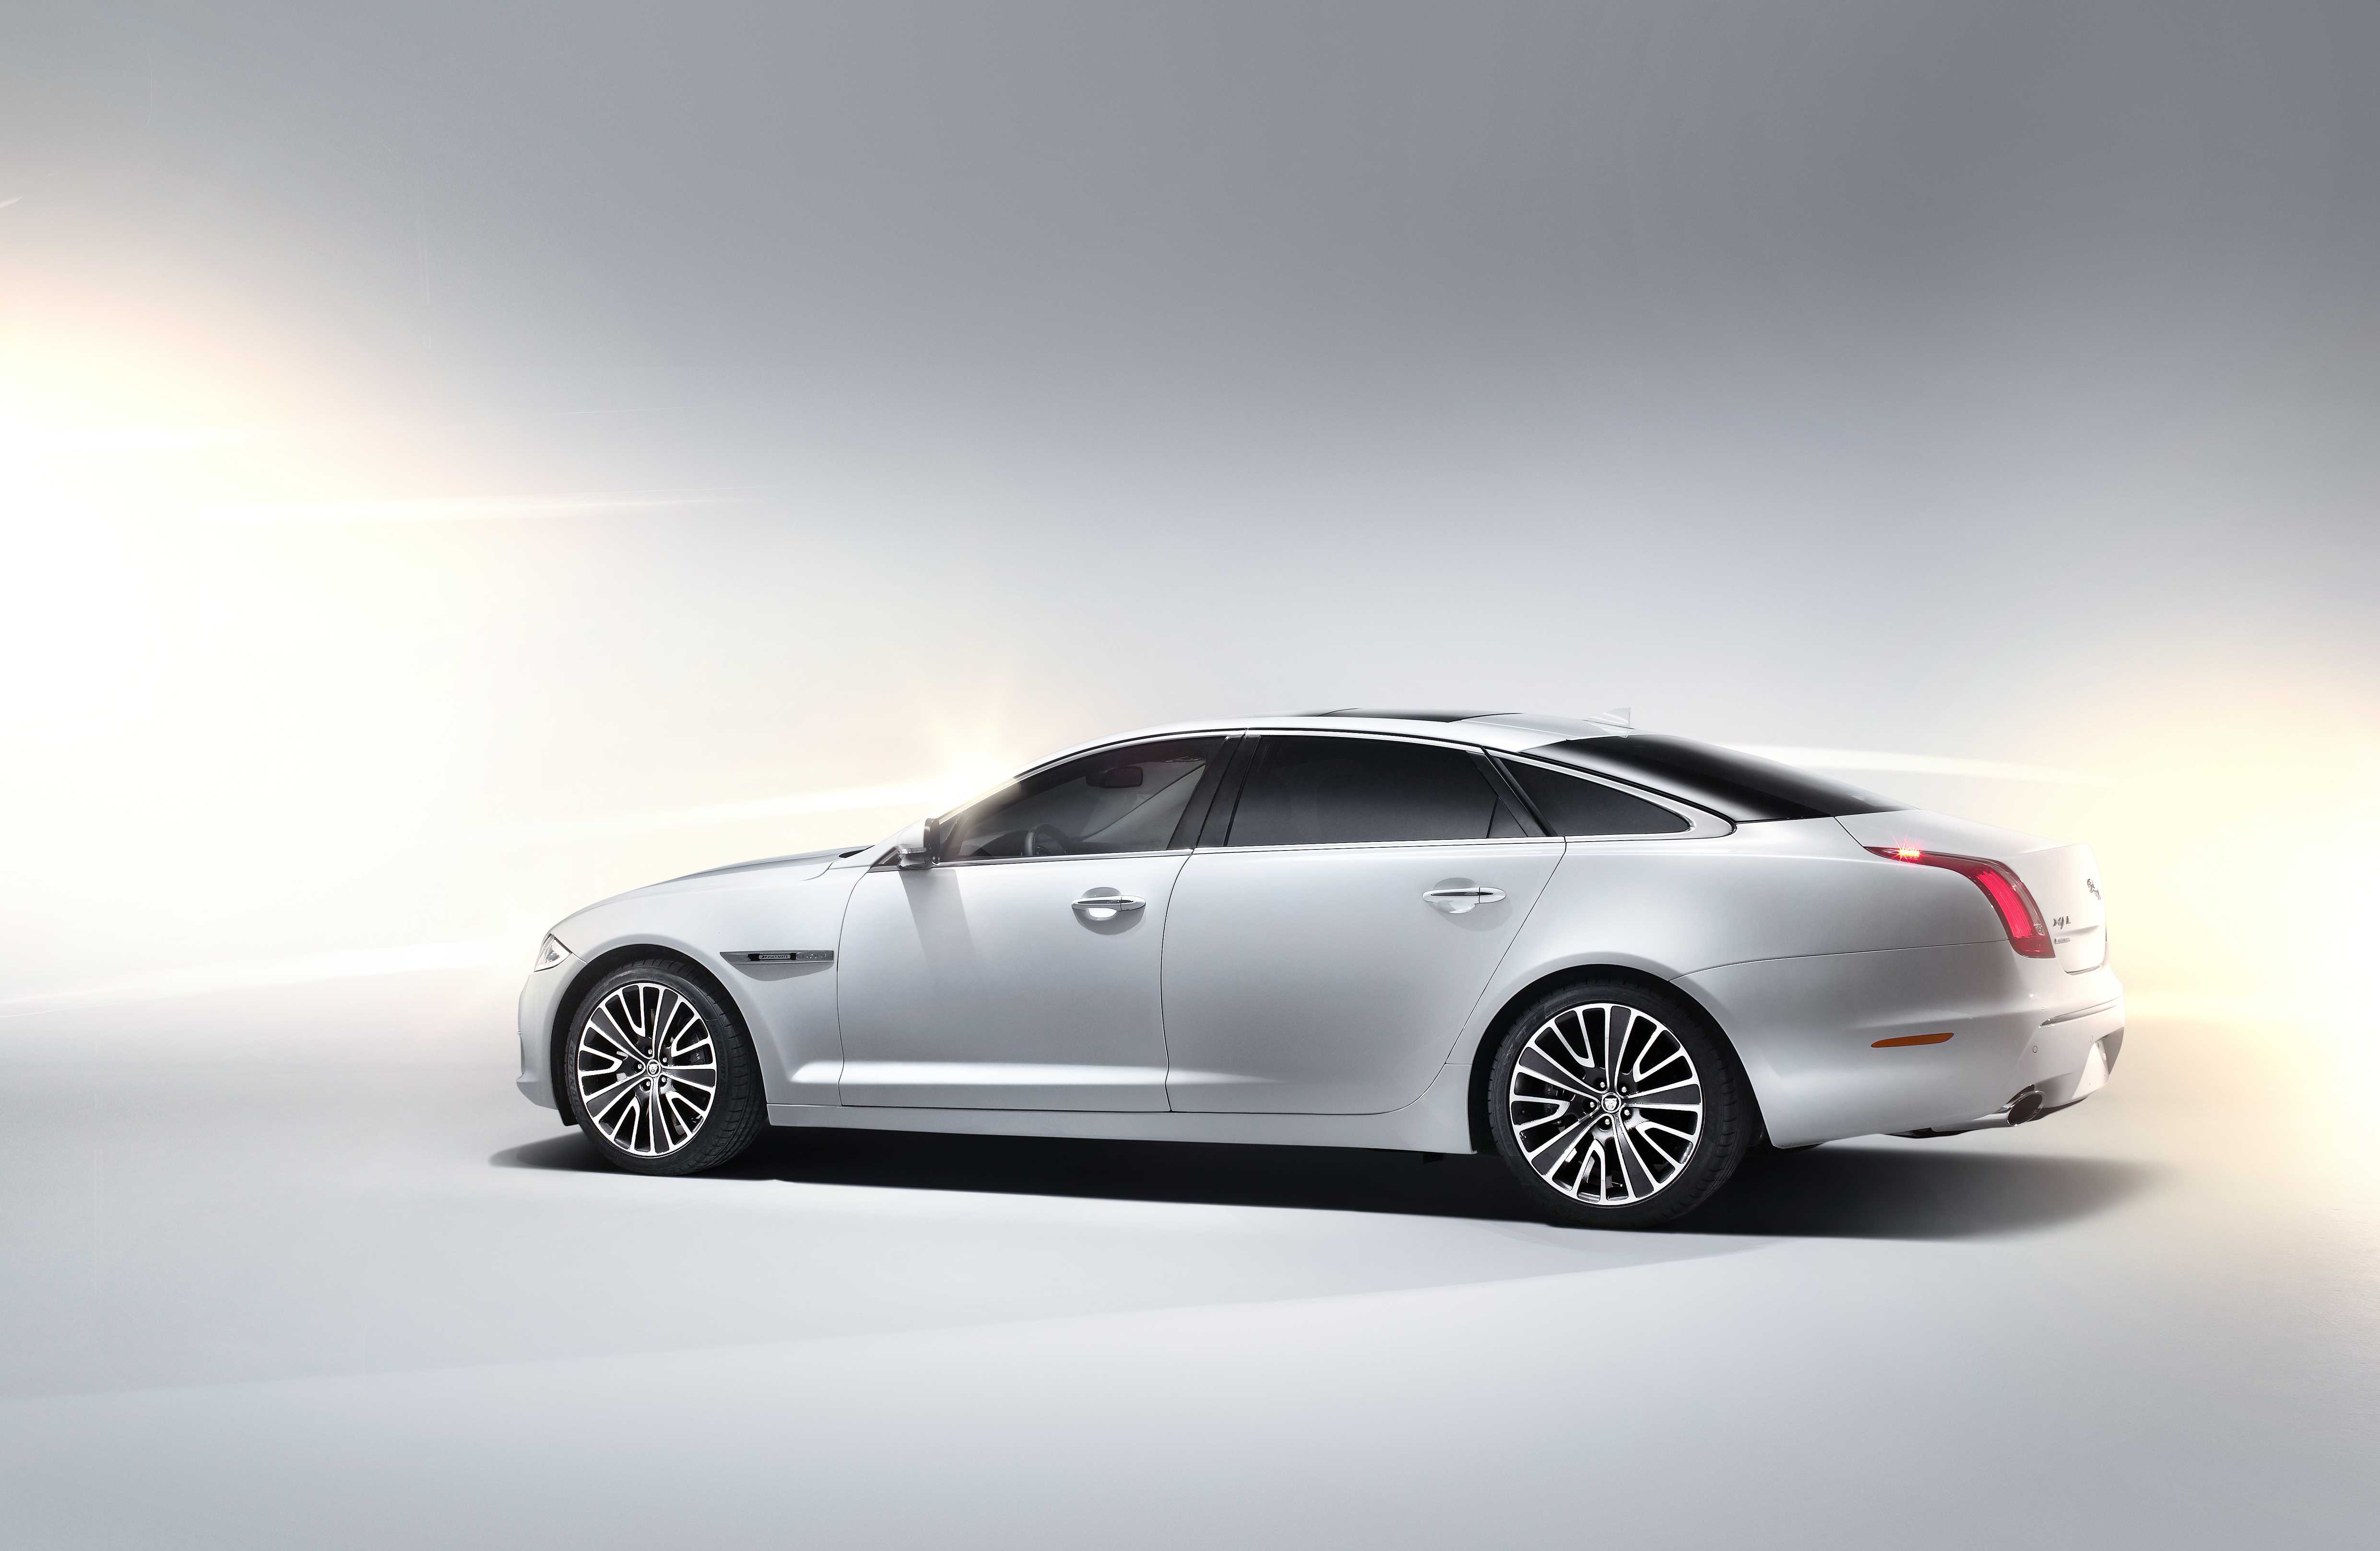 cats accessories play xfr the ready reviews jaguar latest vintage review u for dsc journal xj motoring r